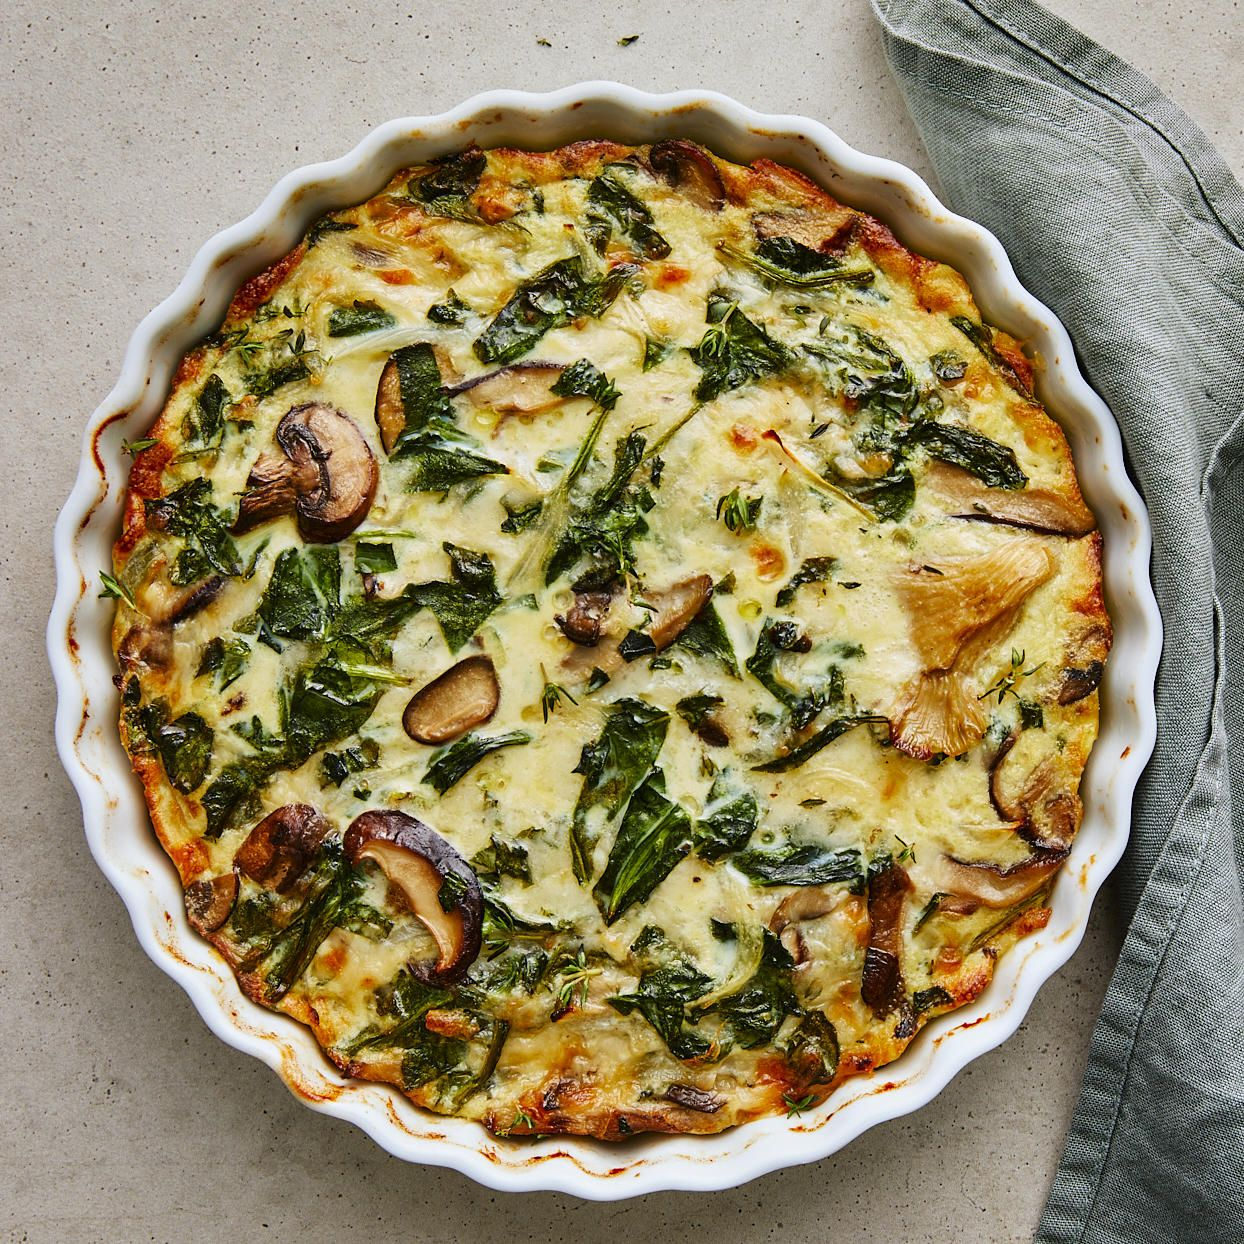 Spinach Mushroom Quiche Recipe Vegetarian Quiche Vegetarian Quiche Recipes Quiche Recipes